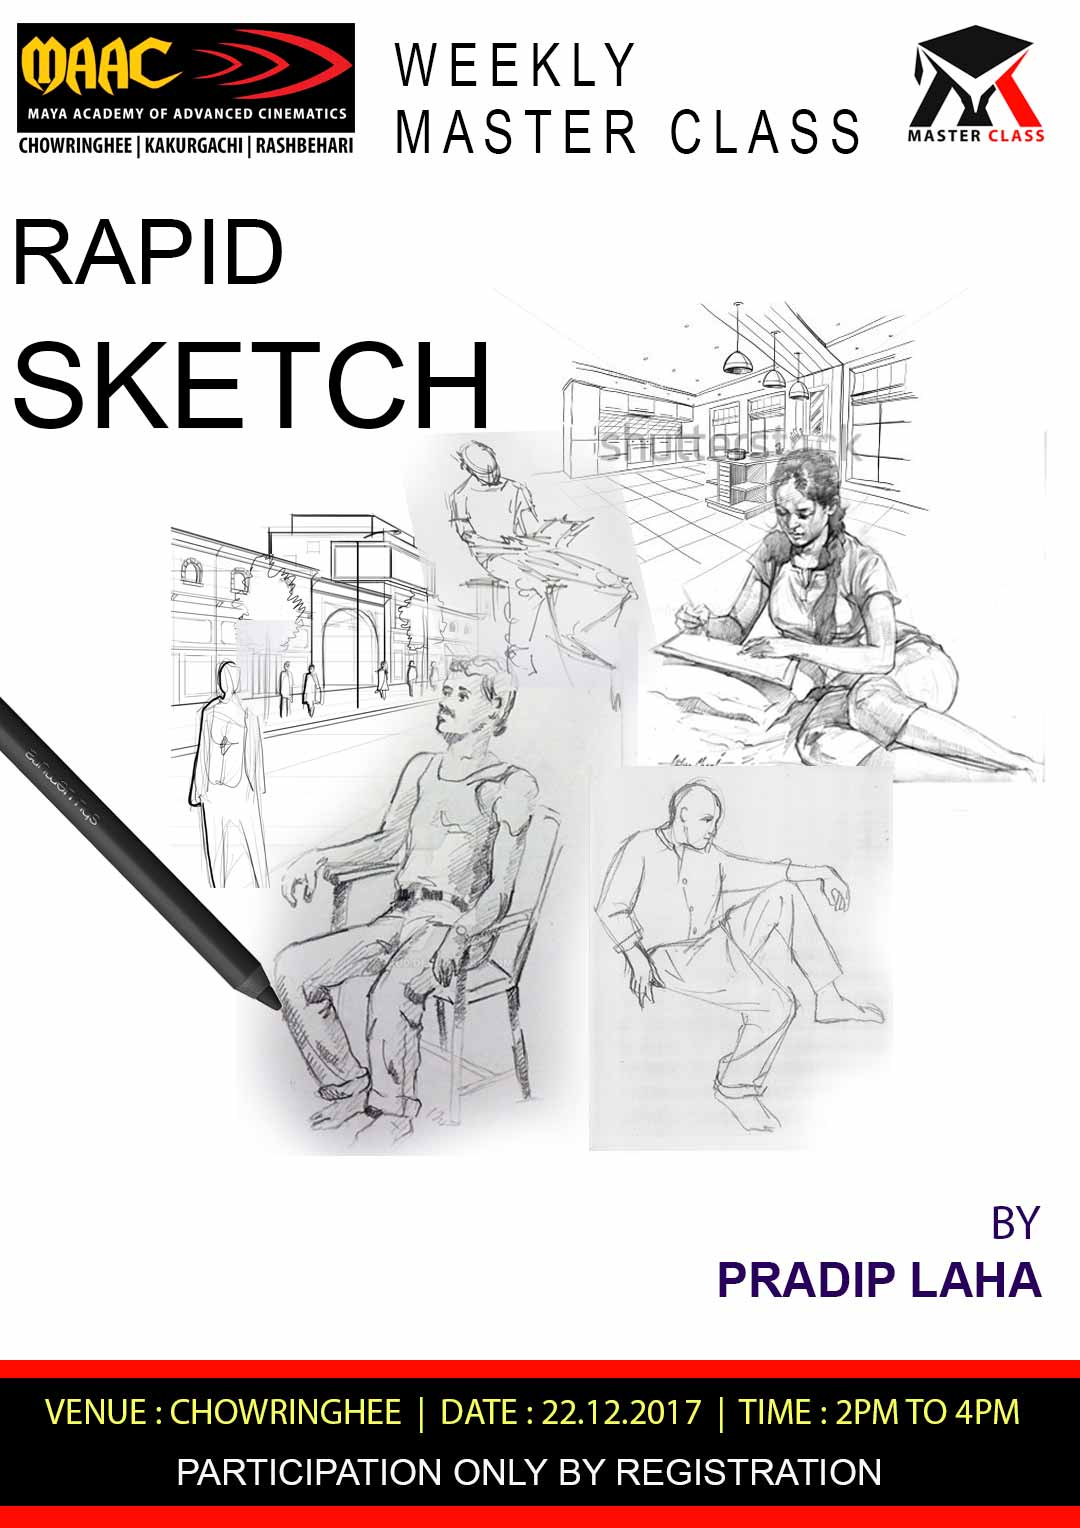 Weekly Master Class on Rapid Sketch